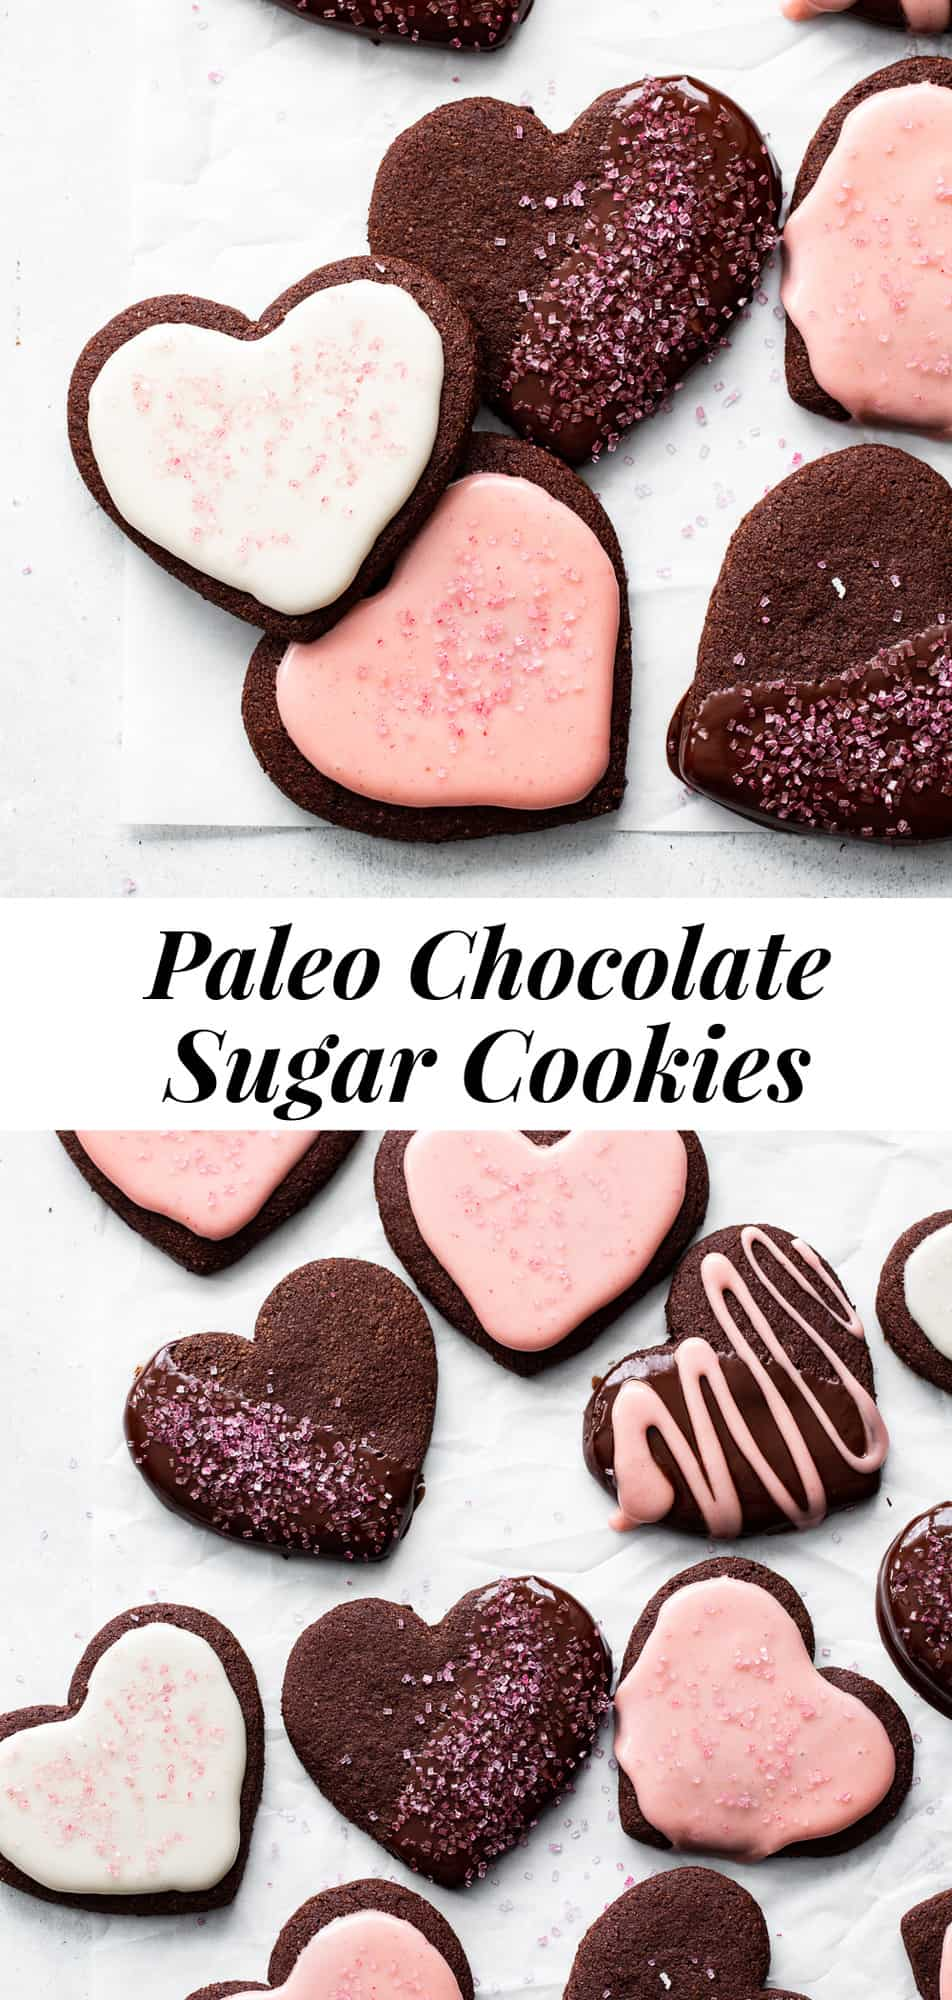 These Paleo Chocolate Sugar Cookies have lots of rich chocolate flavor with crisp edges and slightly chewy middles.  They're paleo, grain free and gluten free with dairy free options and perfect for any special occasion!  #paleo #paleobaking #glutenfreebaking #cookies #glutenfree